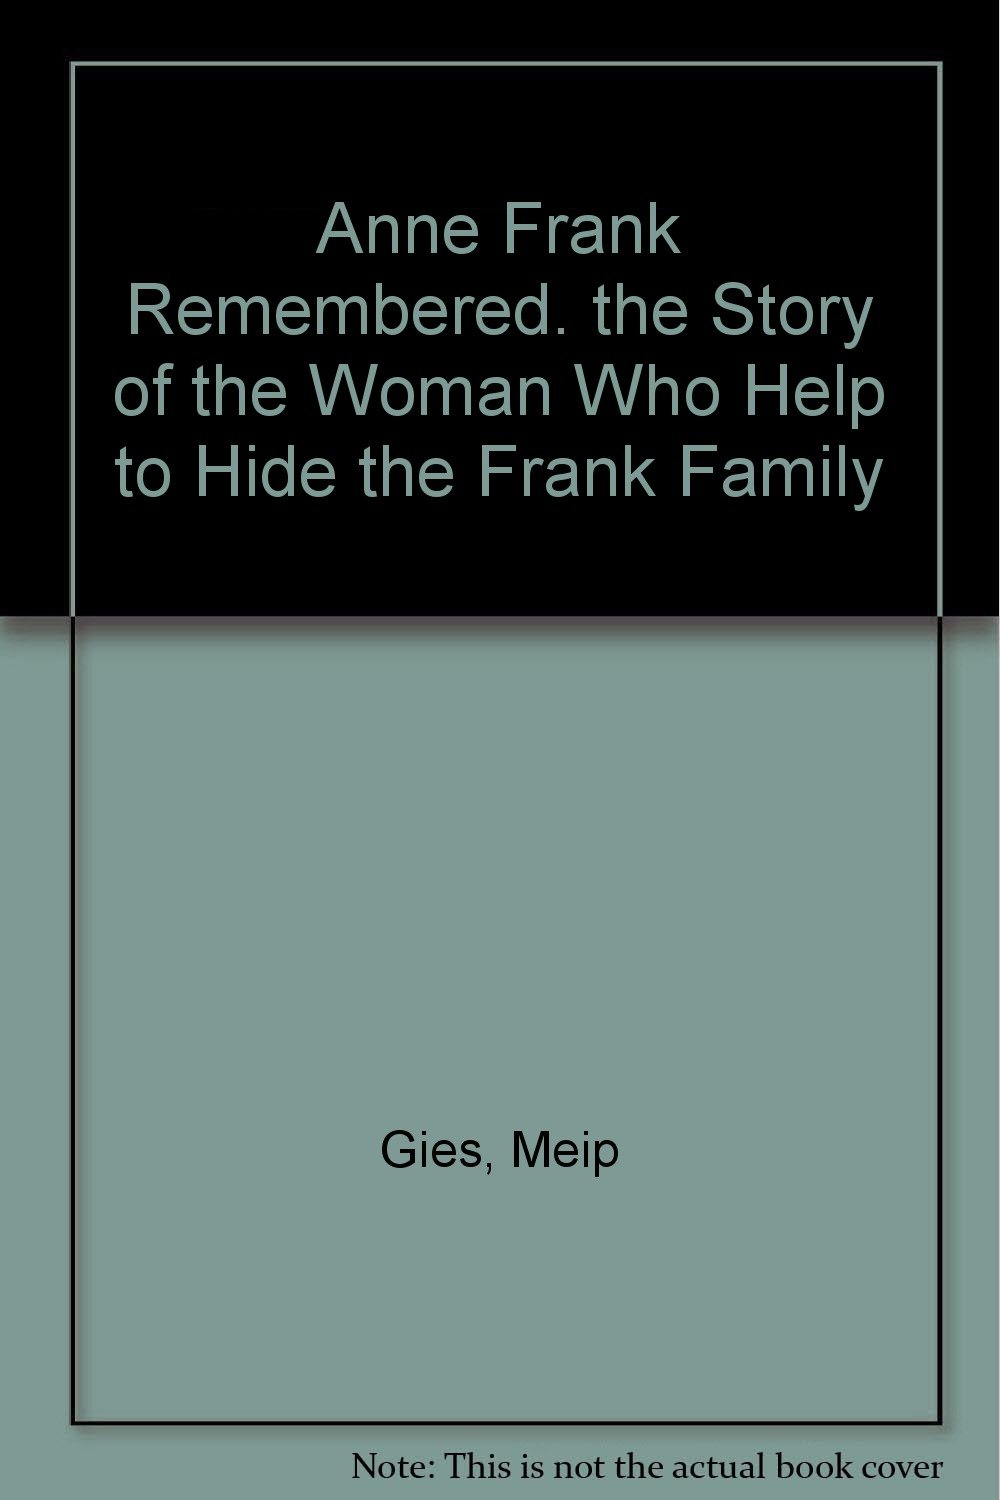 Anne Frank Remembered. the Story of the Woman Who Help to Hide the Frank Family